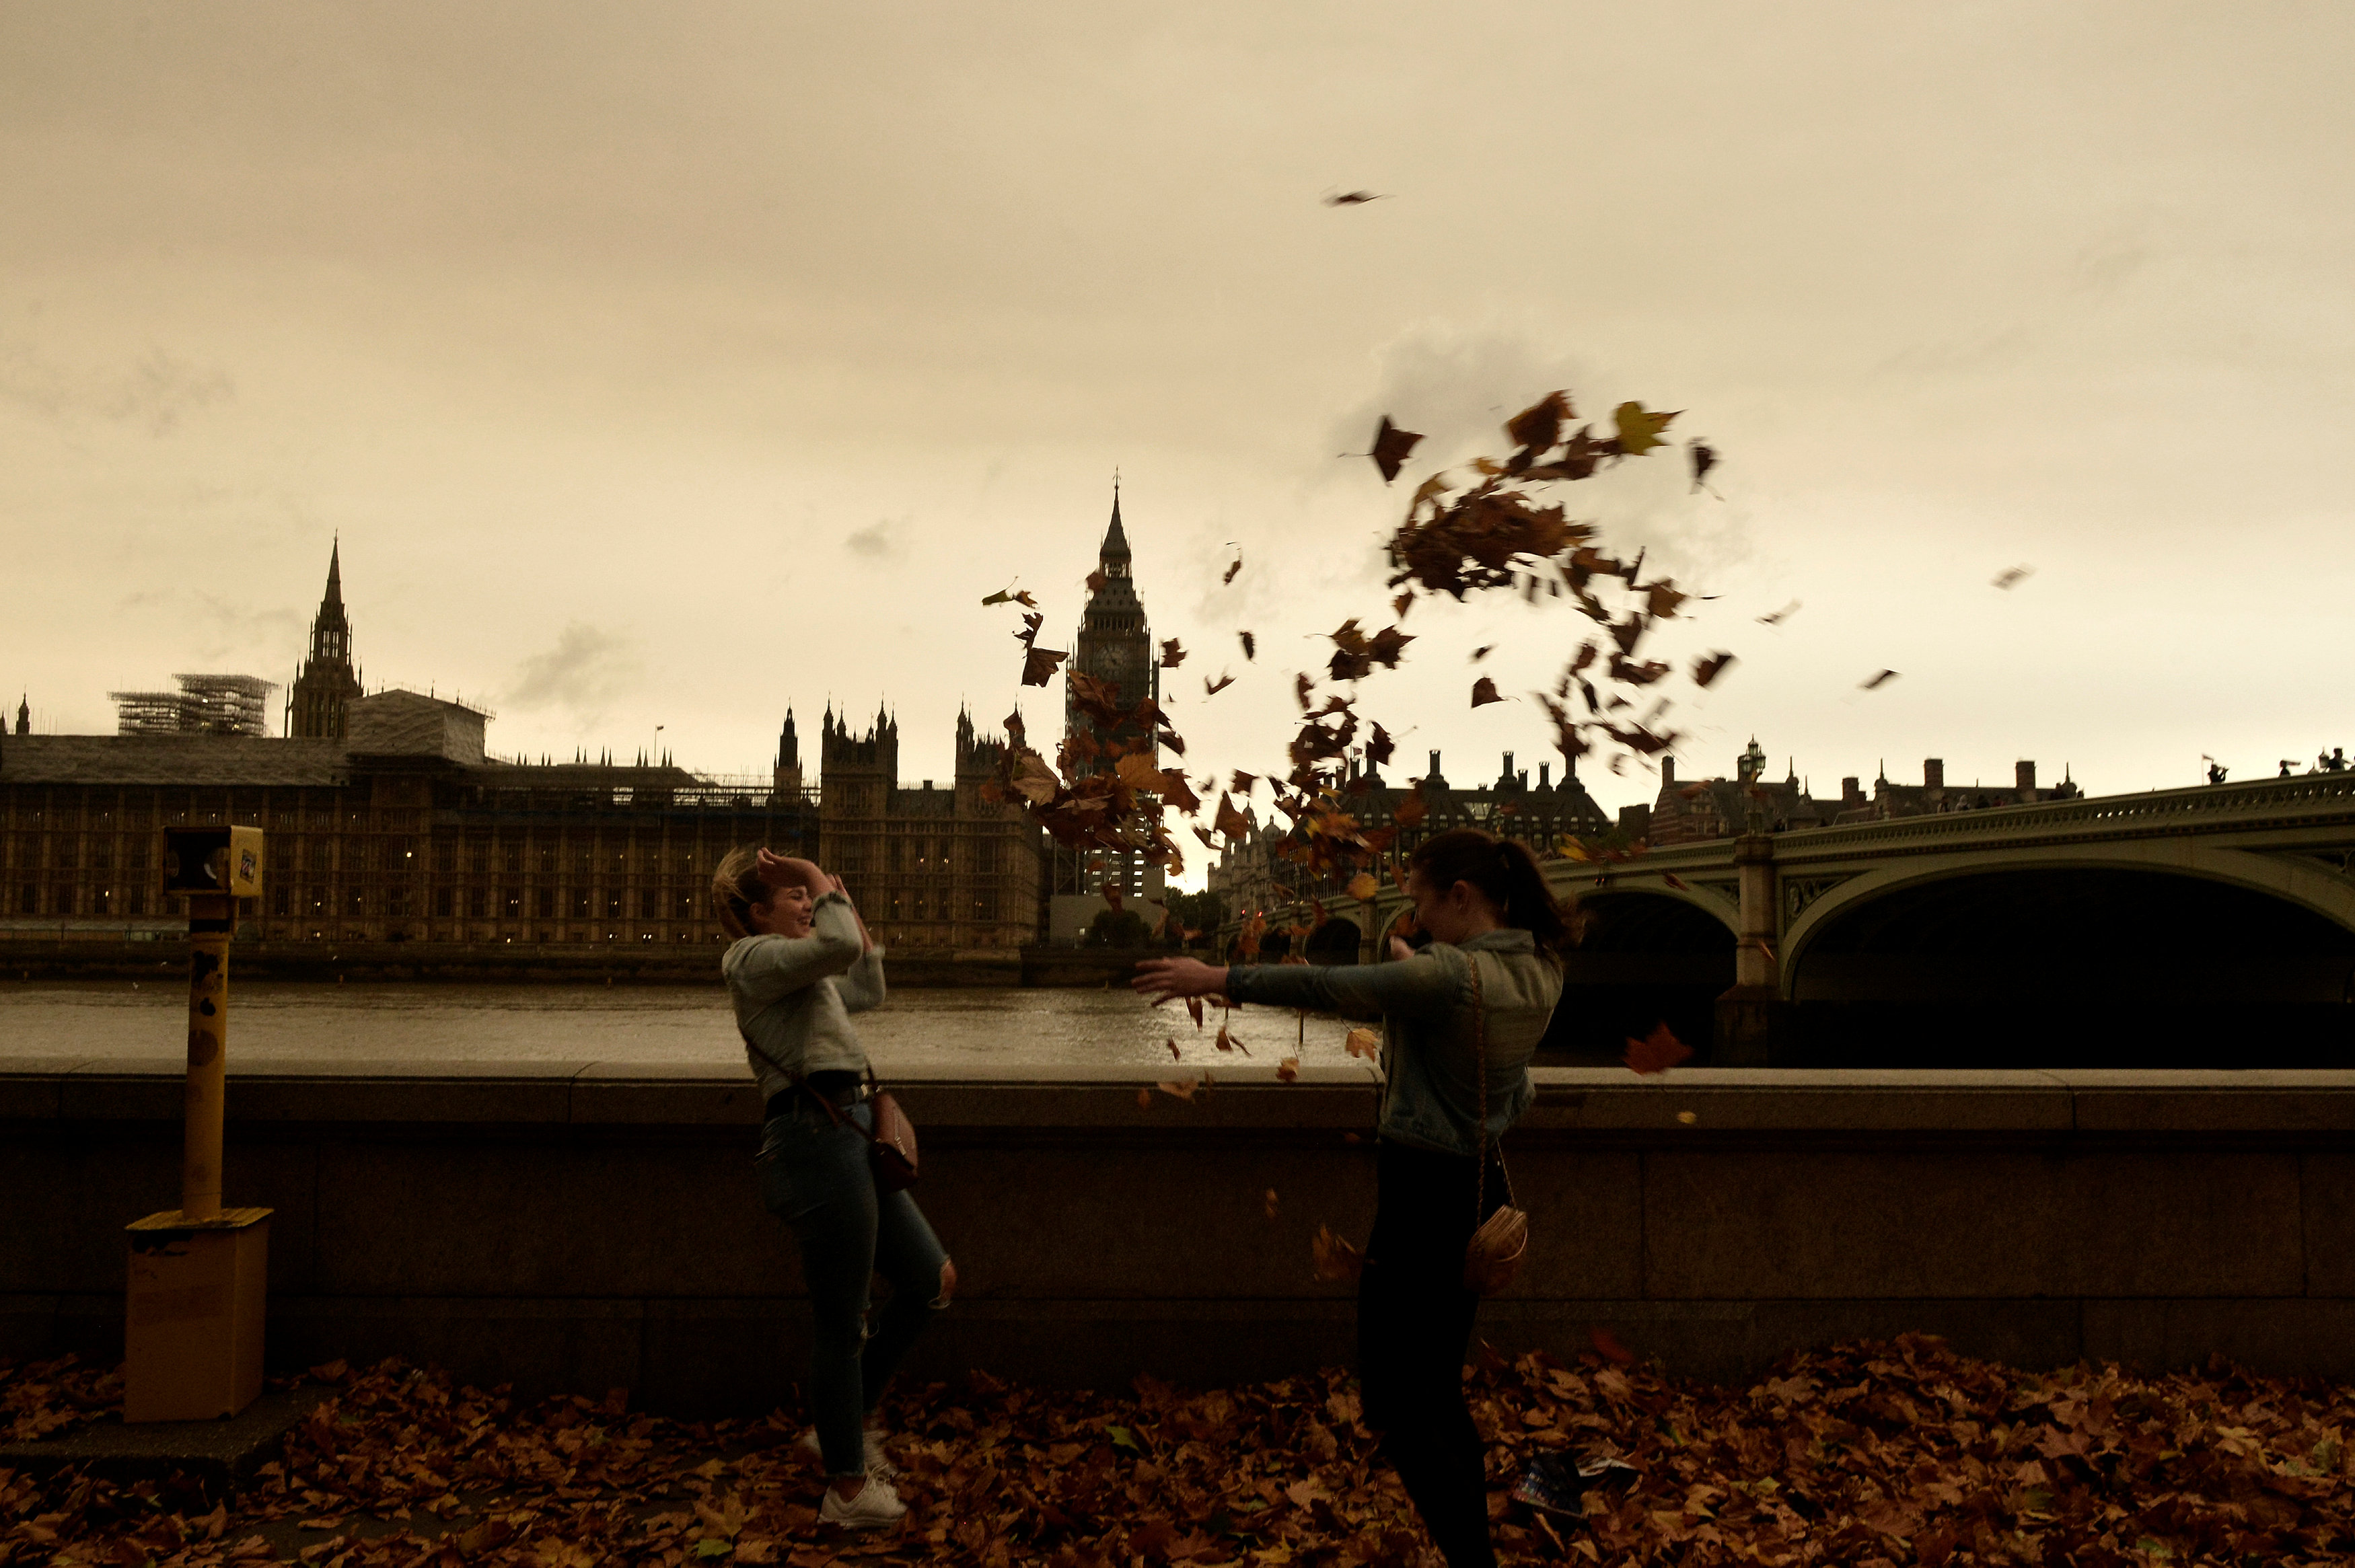 El cielo sobre Westminster (Reuters/Mary Turner)